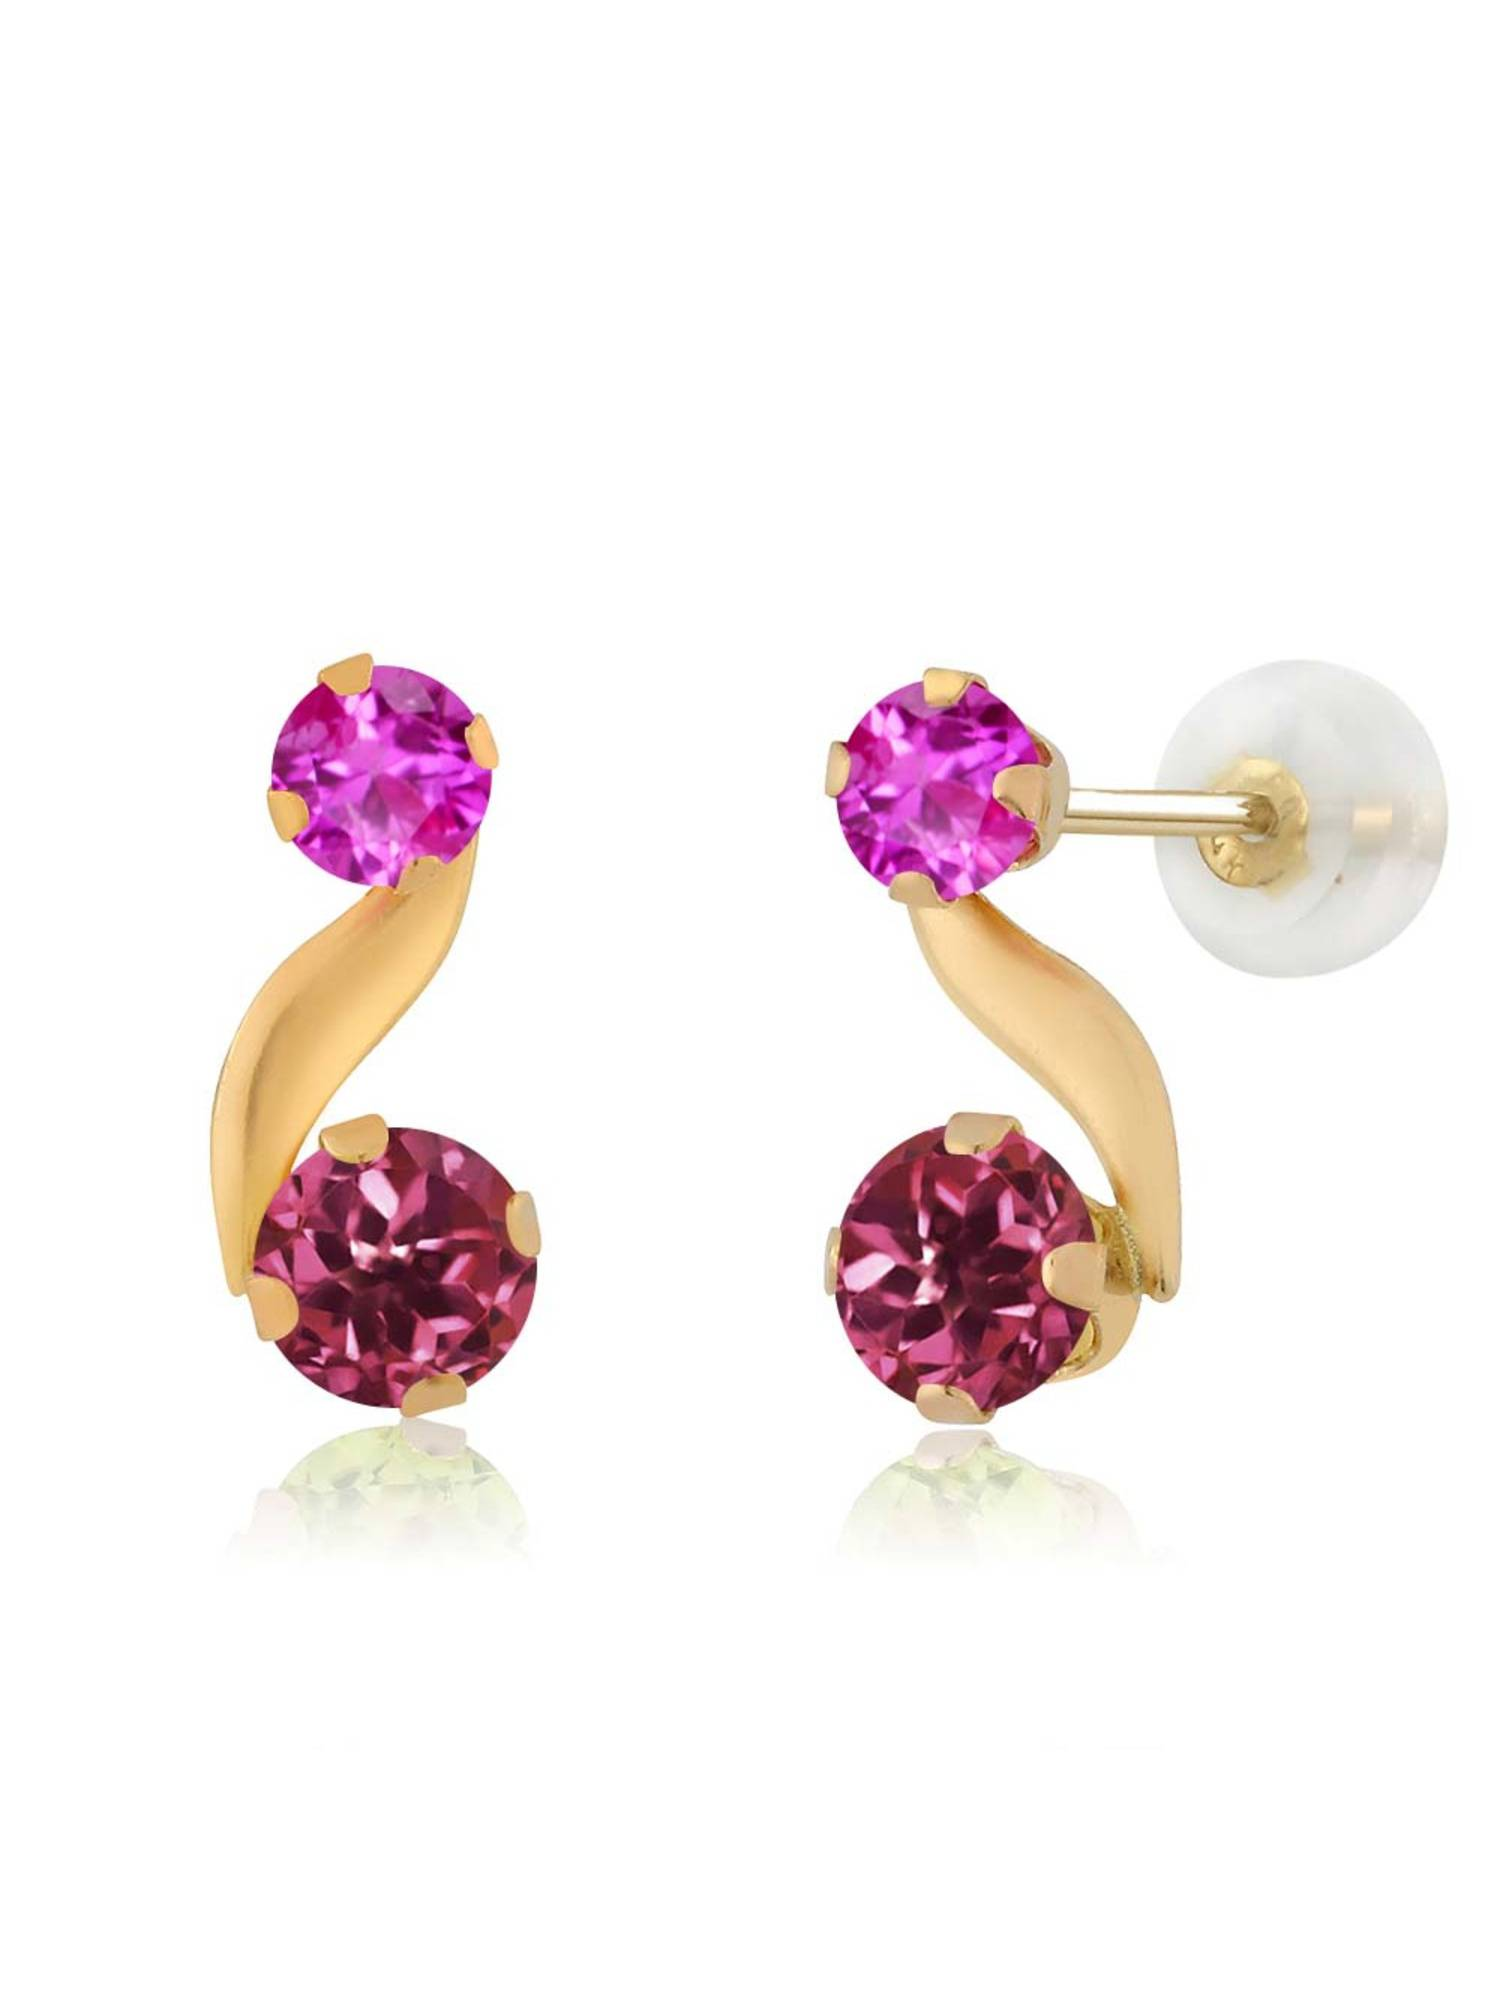 0.74 Ct Round Pink Tourmaline Pink Sapphire 14K Yellow Gold Earrings by